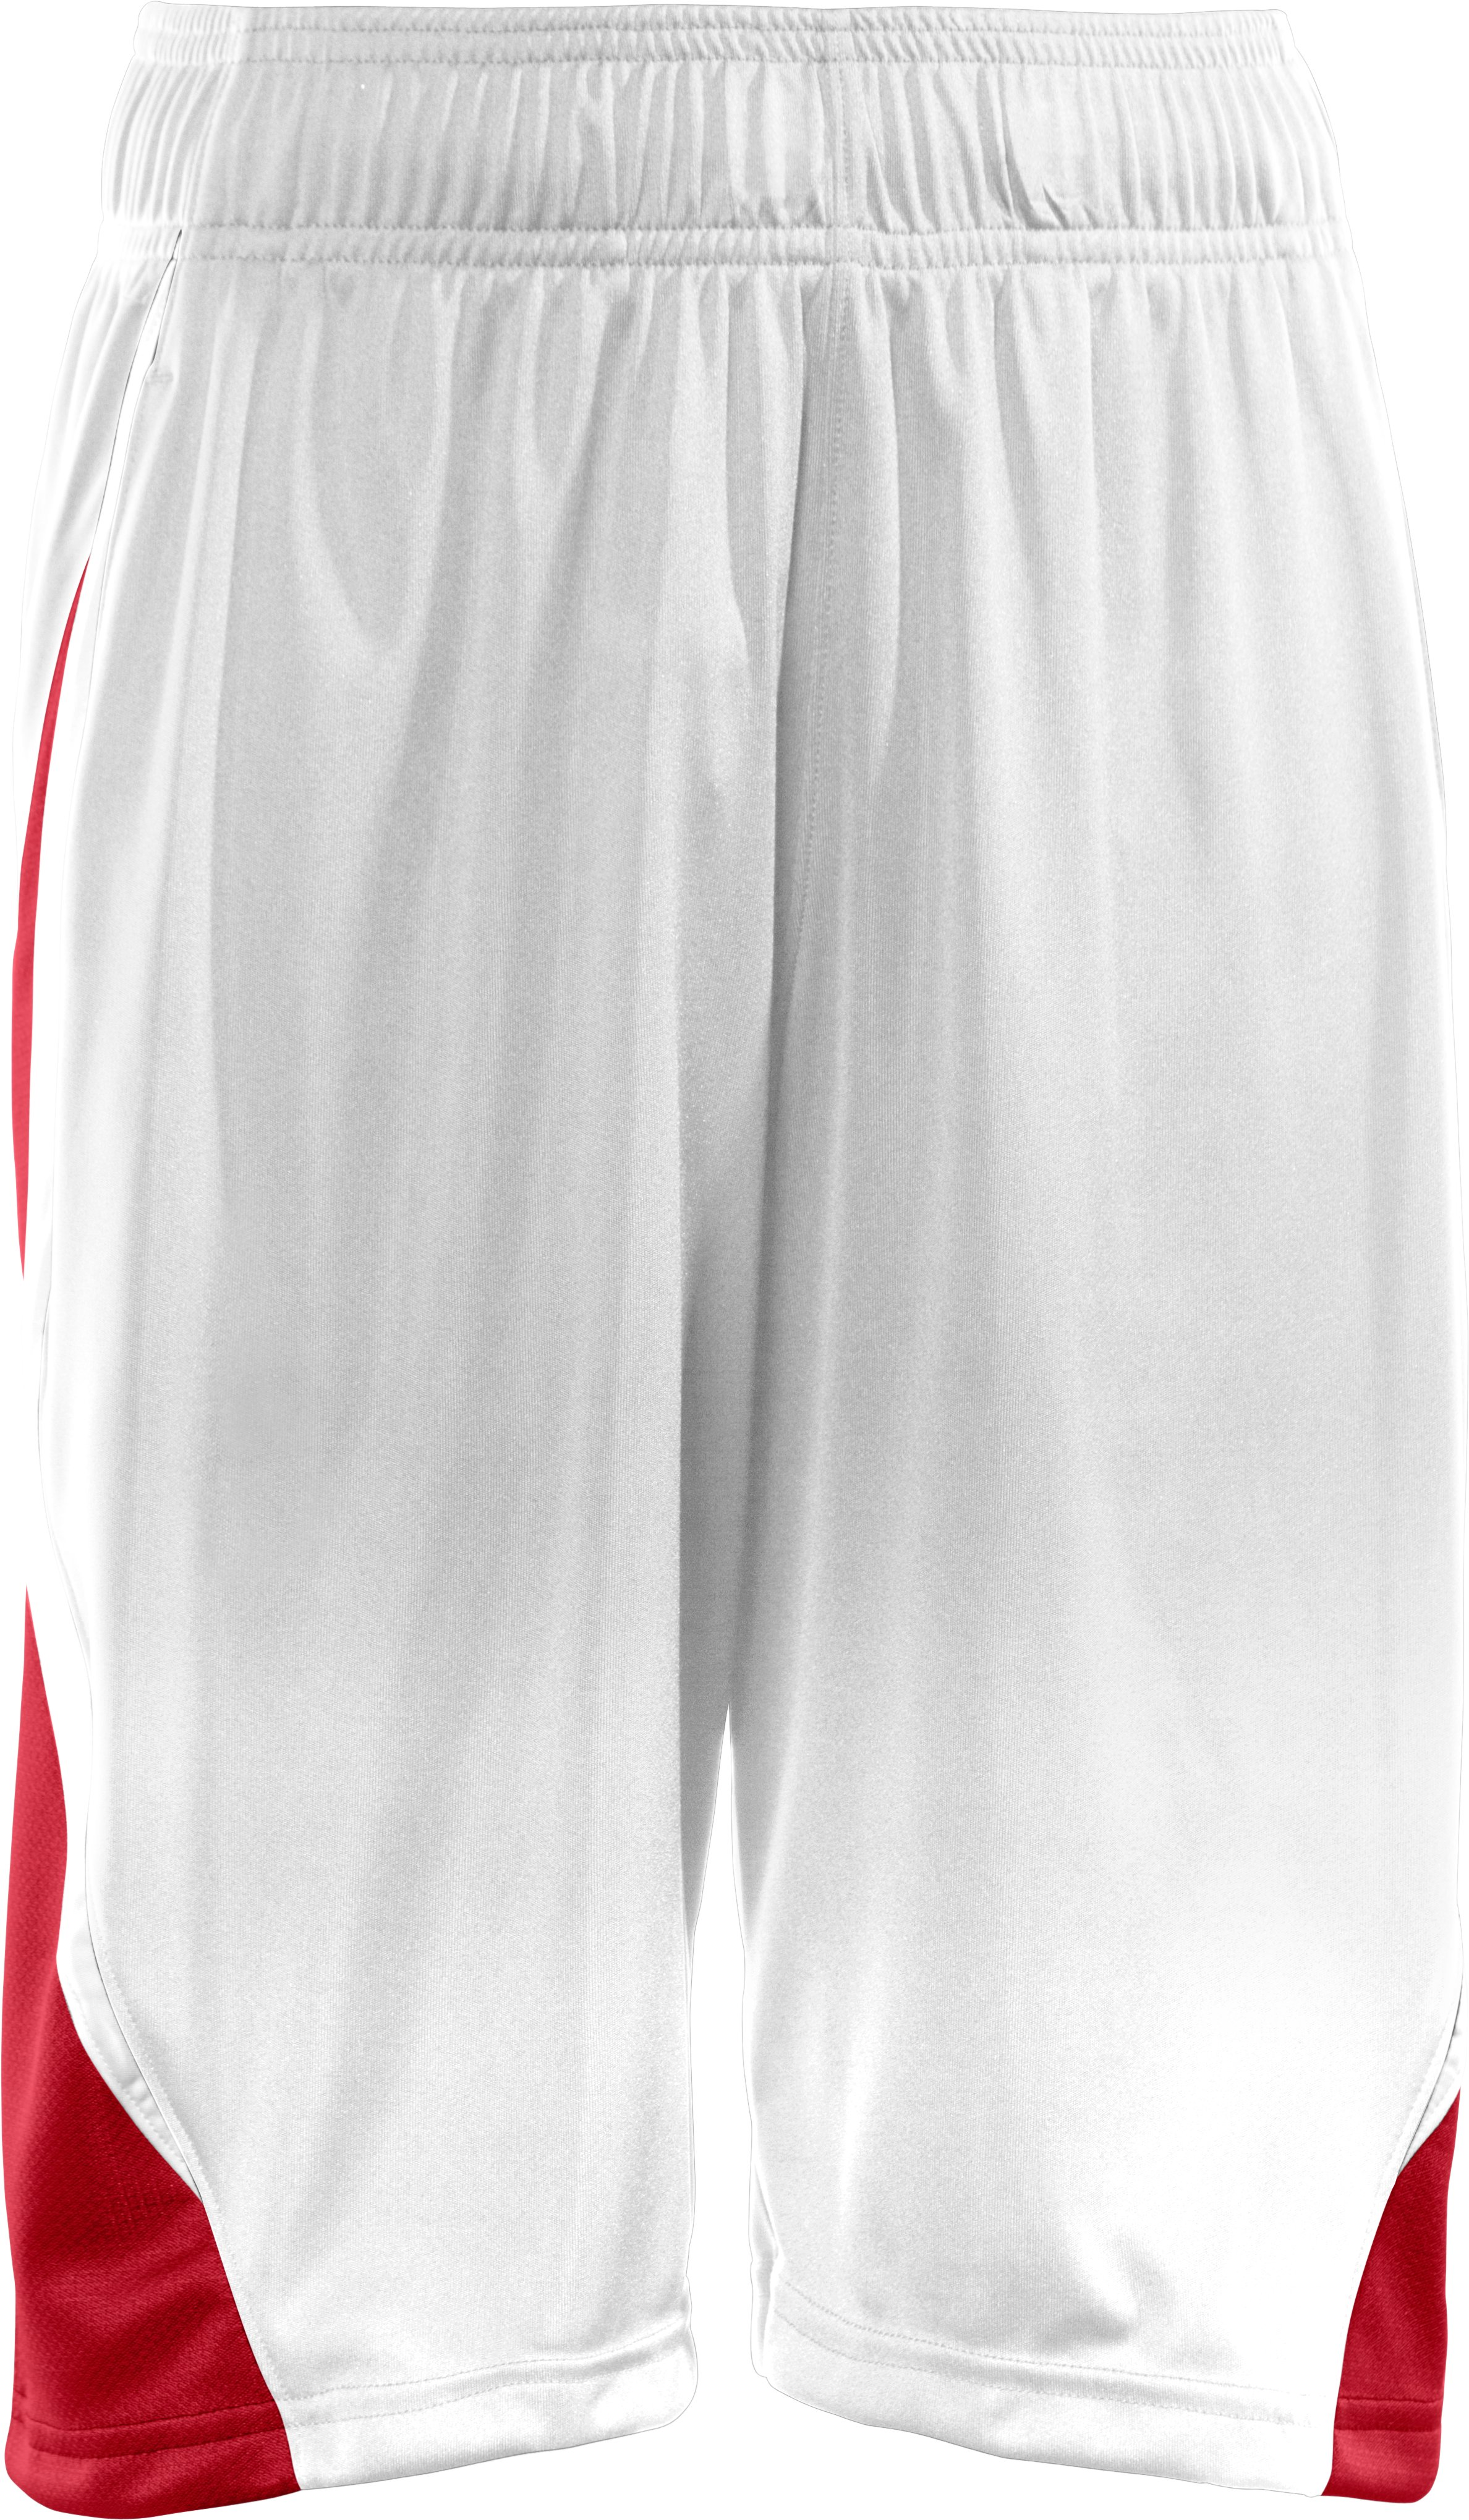 "Boys' UA Albesure 10"" Basketball Shorts, White"